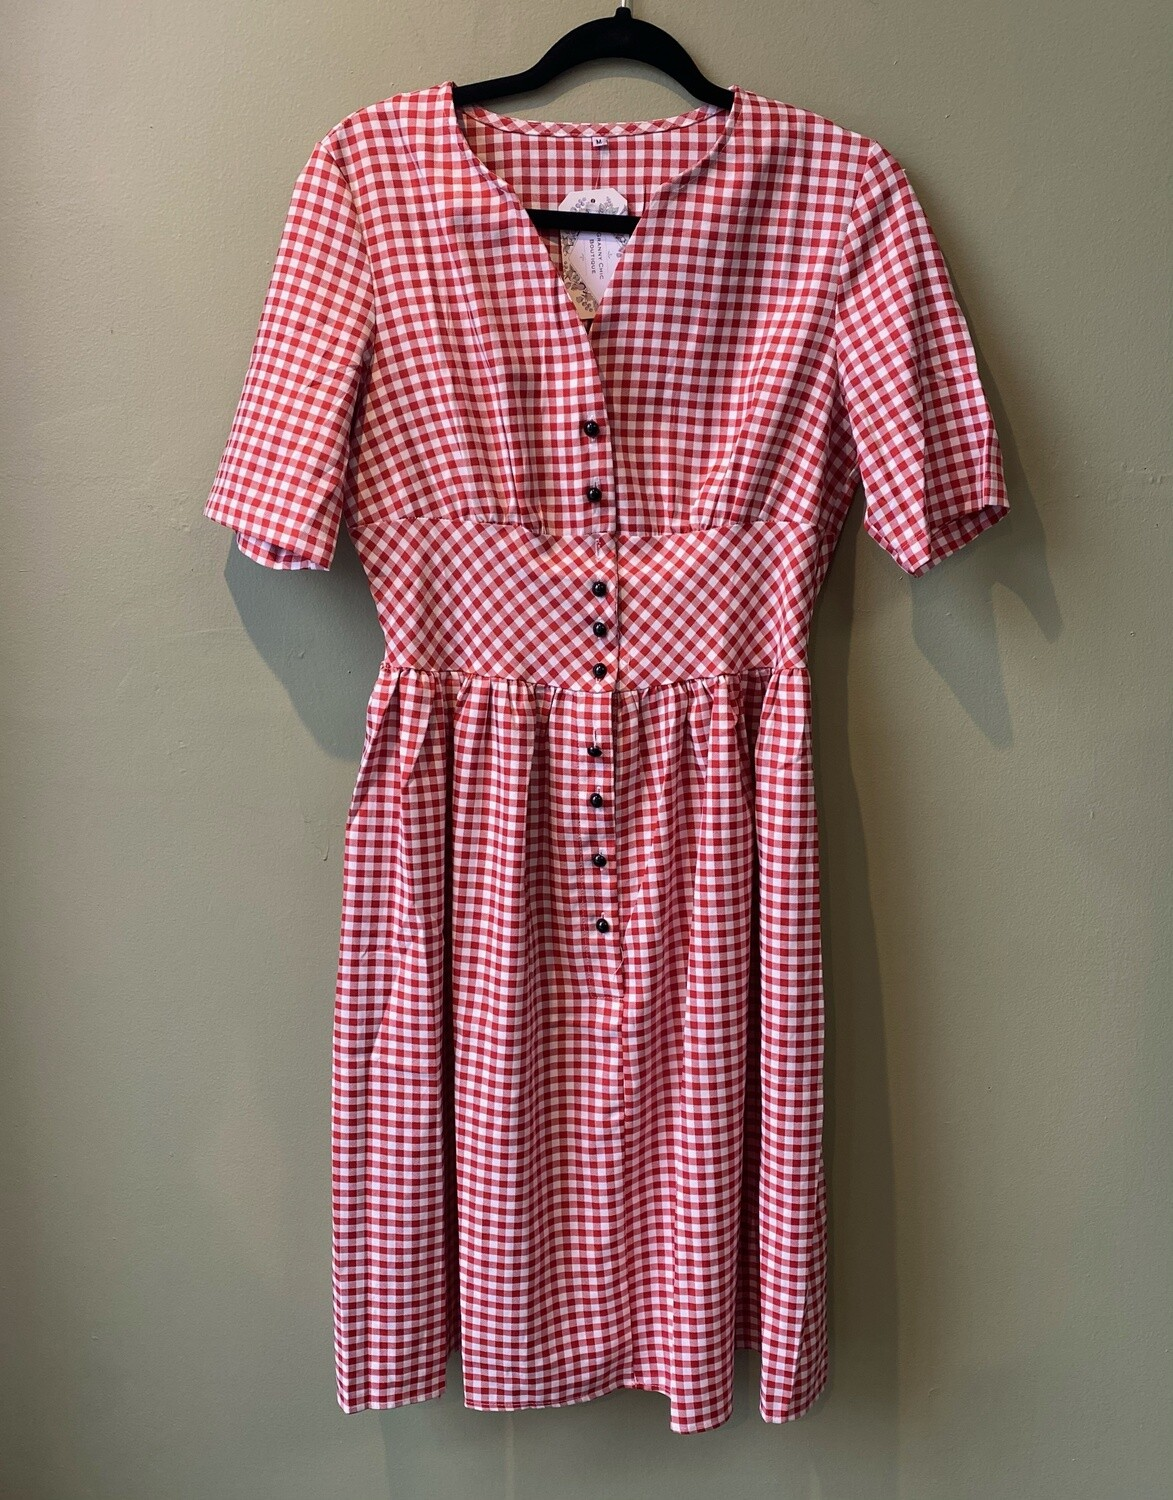 Red and White Checkered Summer Dress, Size M